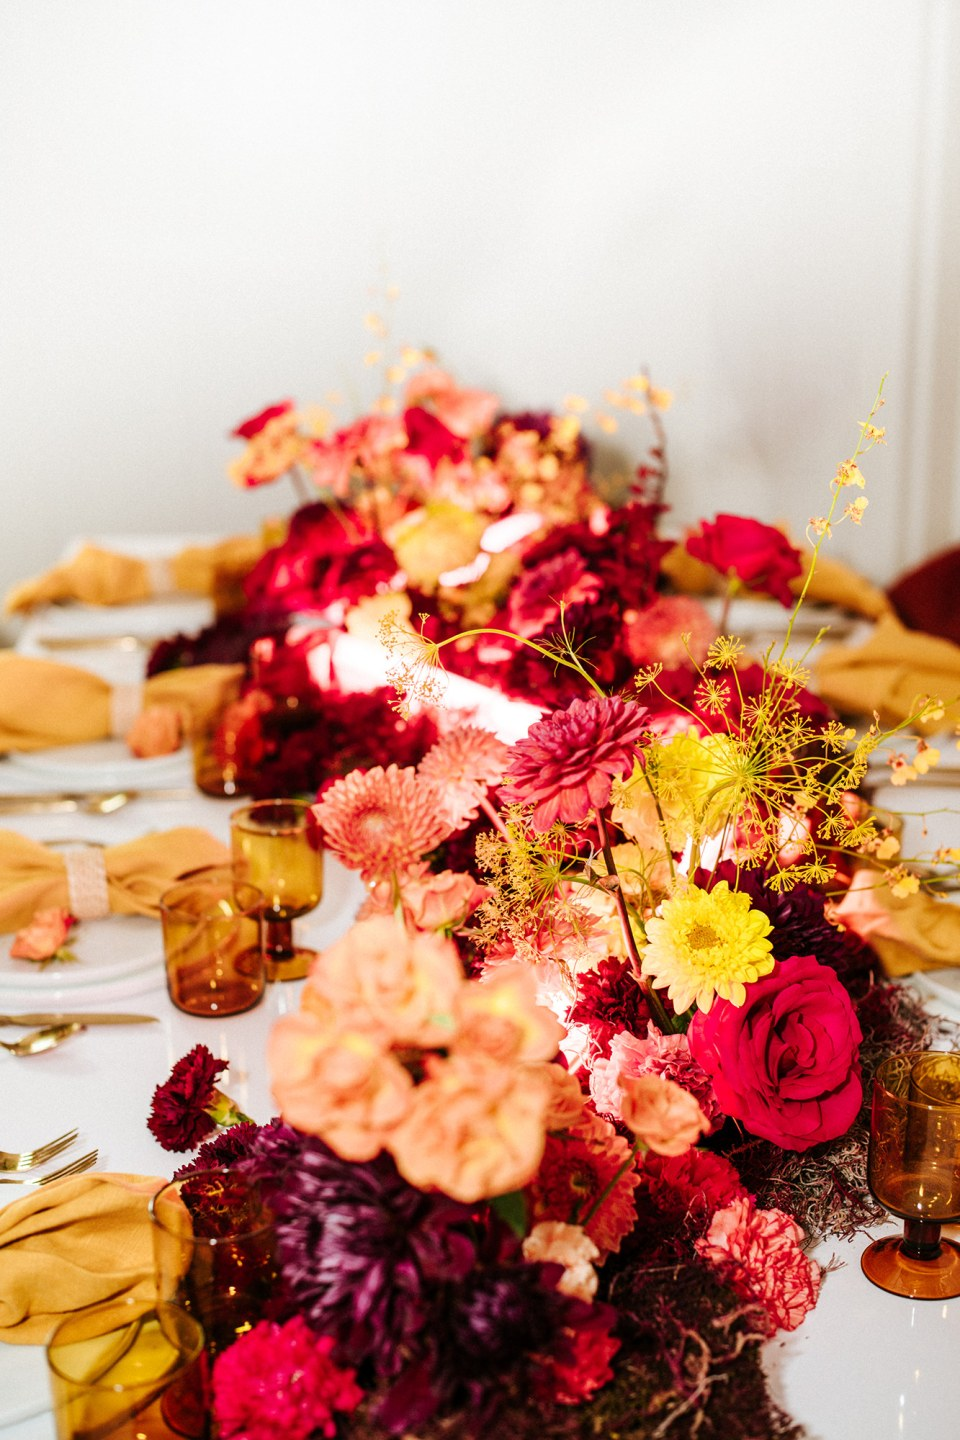 Bright and colorful wedding table decor with floral centerpiece